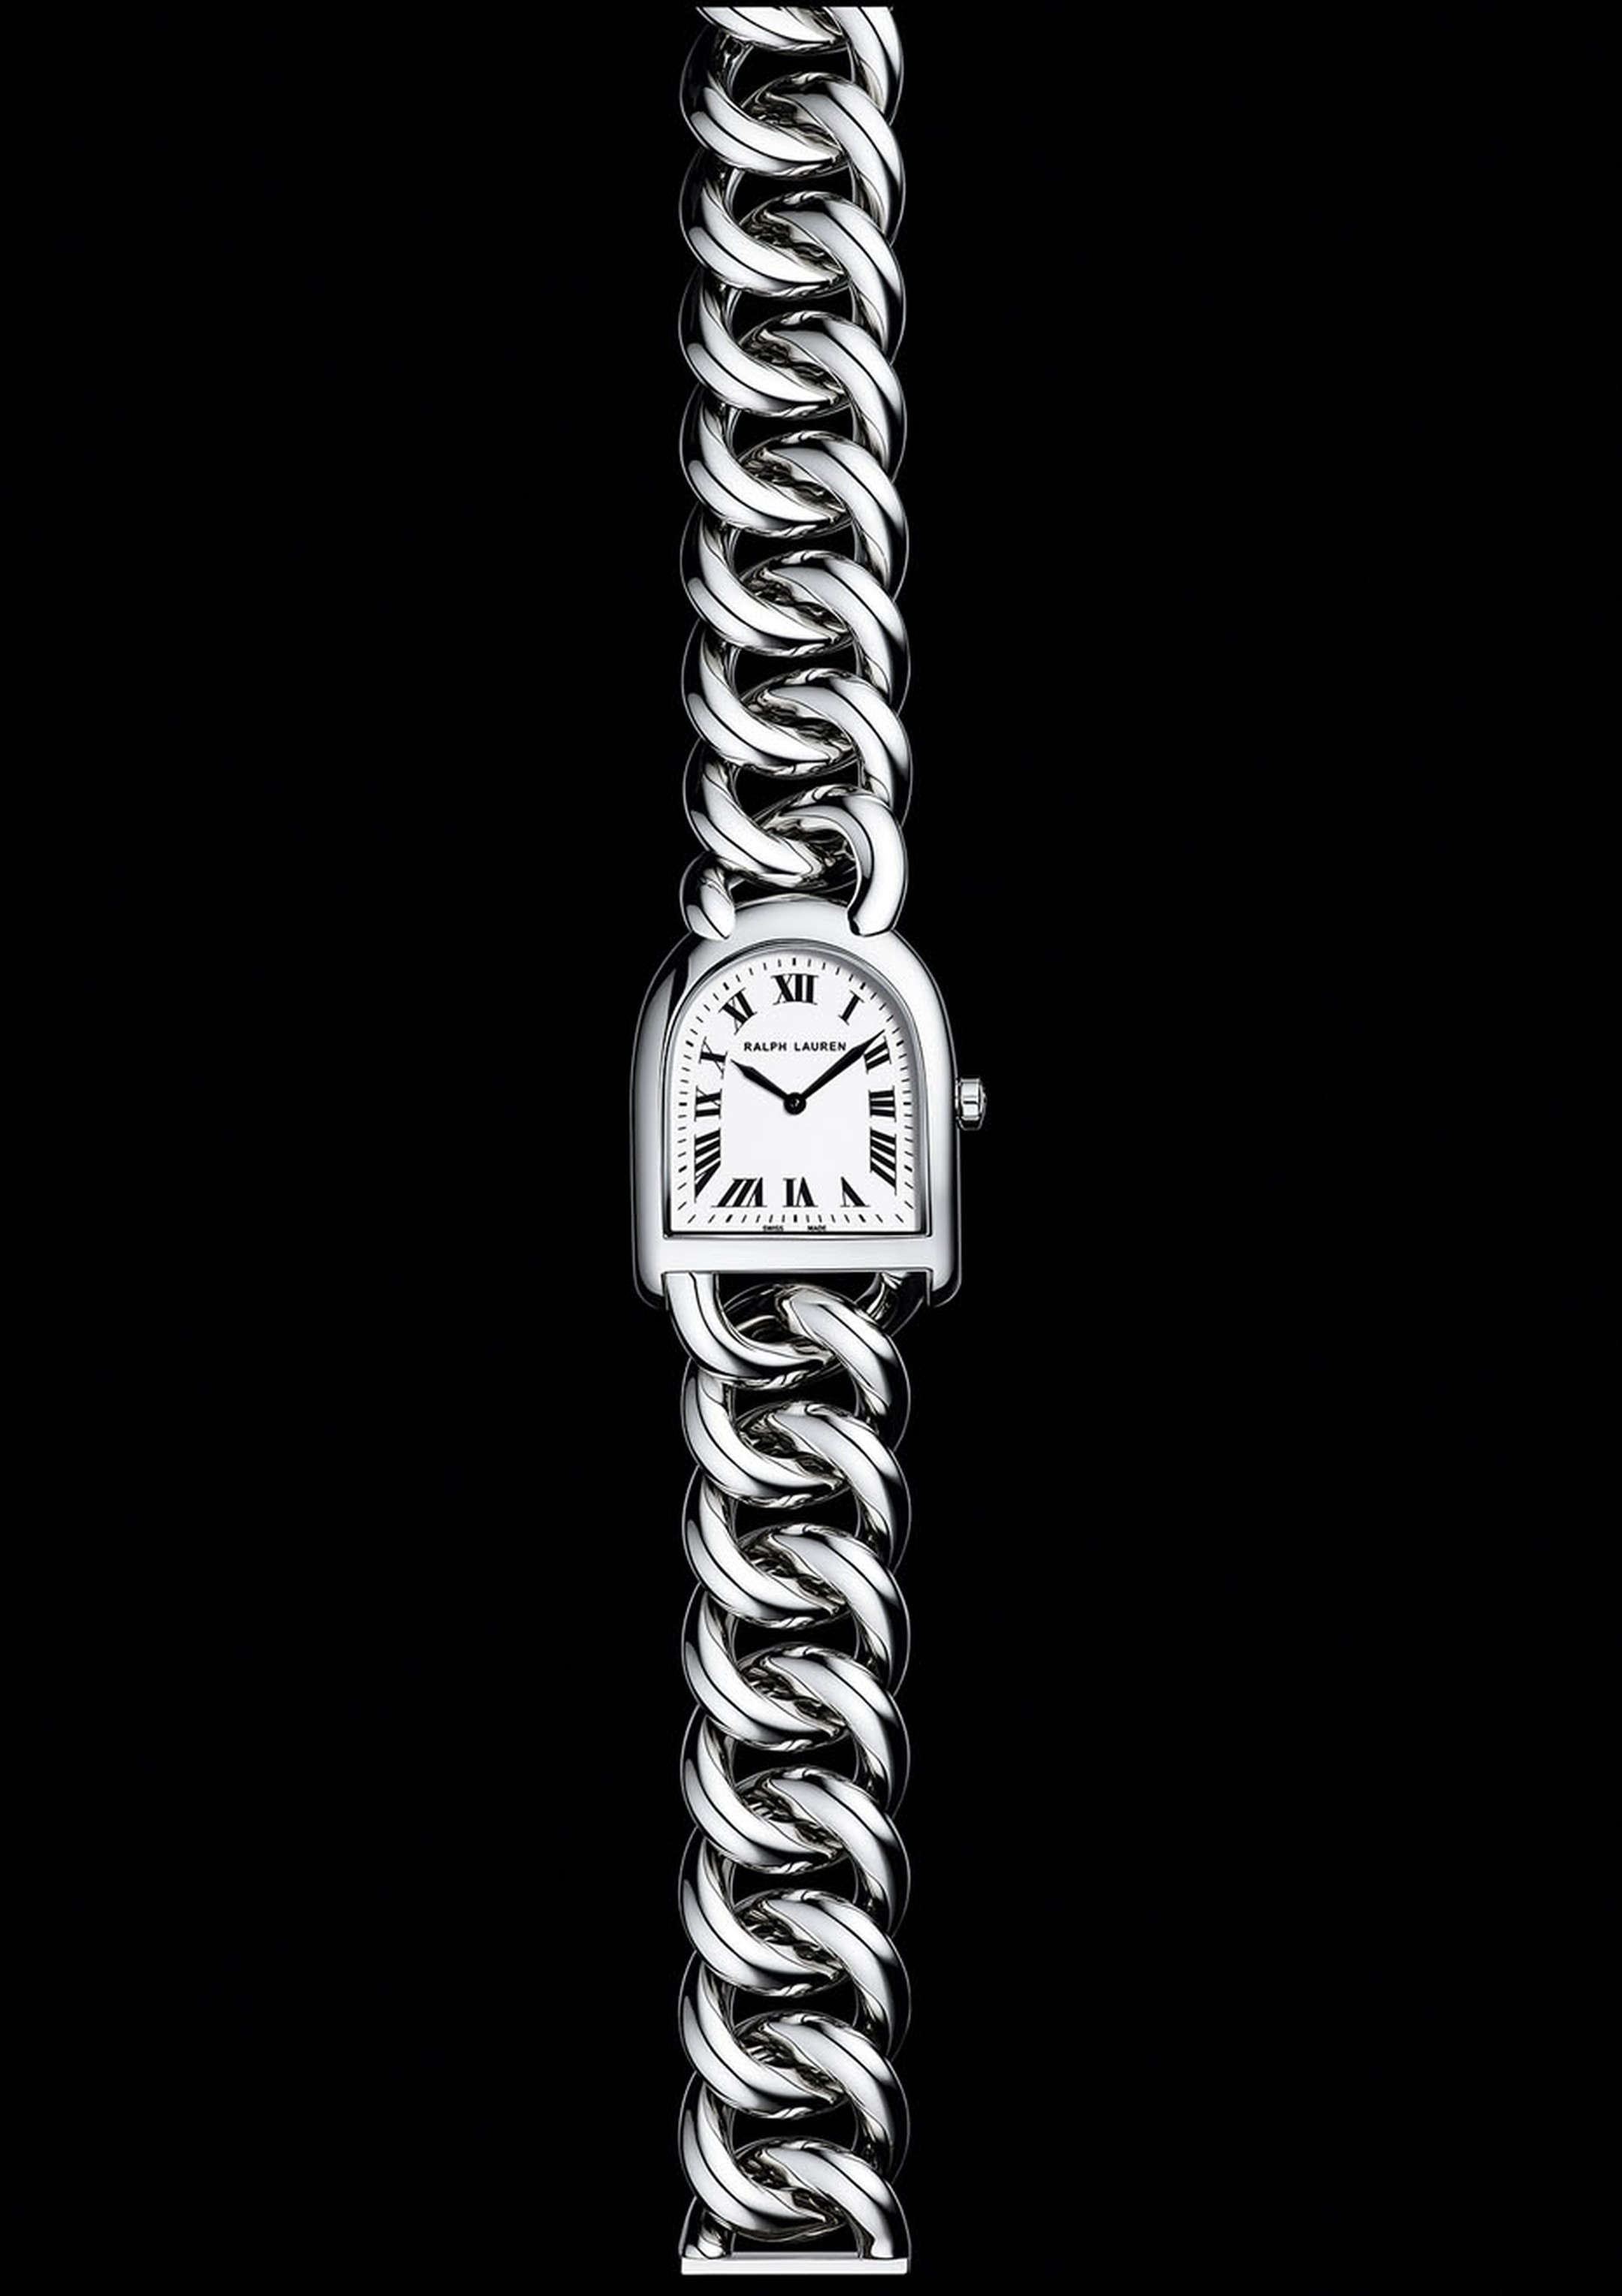 The new Ralph Lauren Stirrup Petit Link is, at just 23.3mm across, daintier than any Stirrup watch that has preceded it.